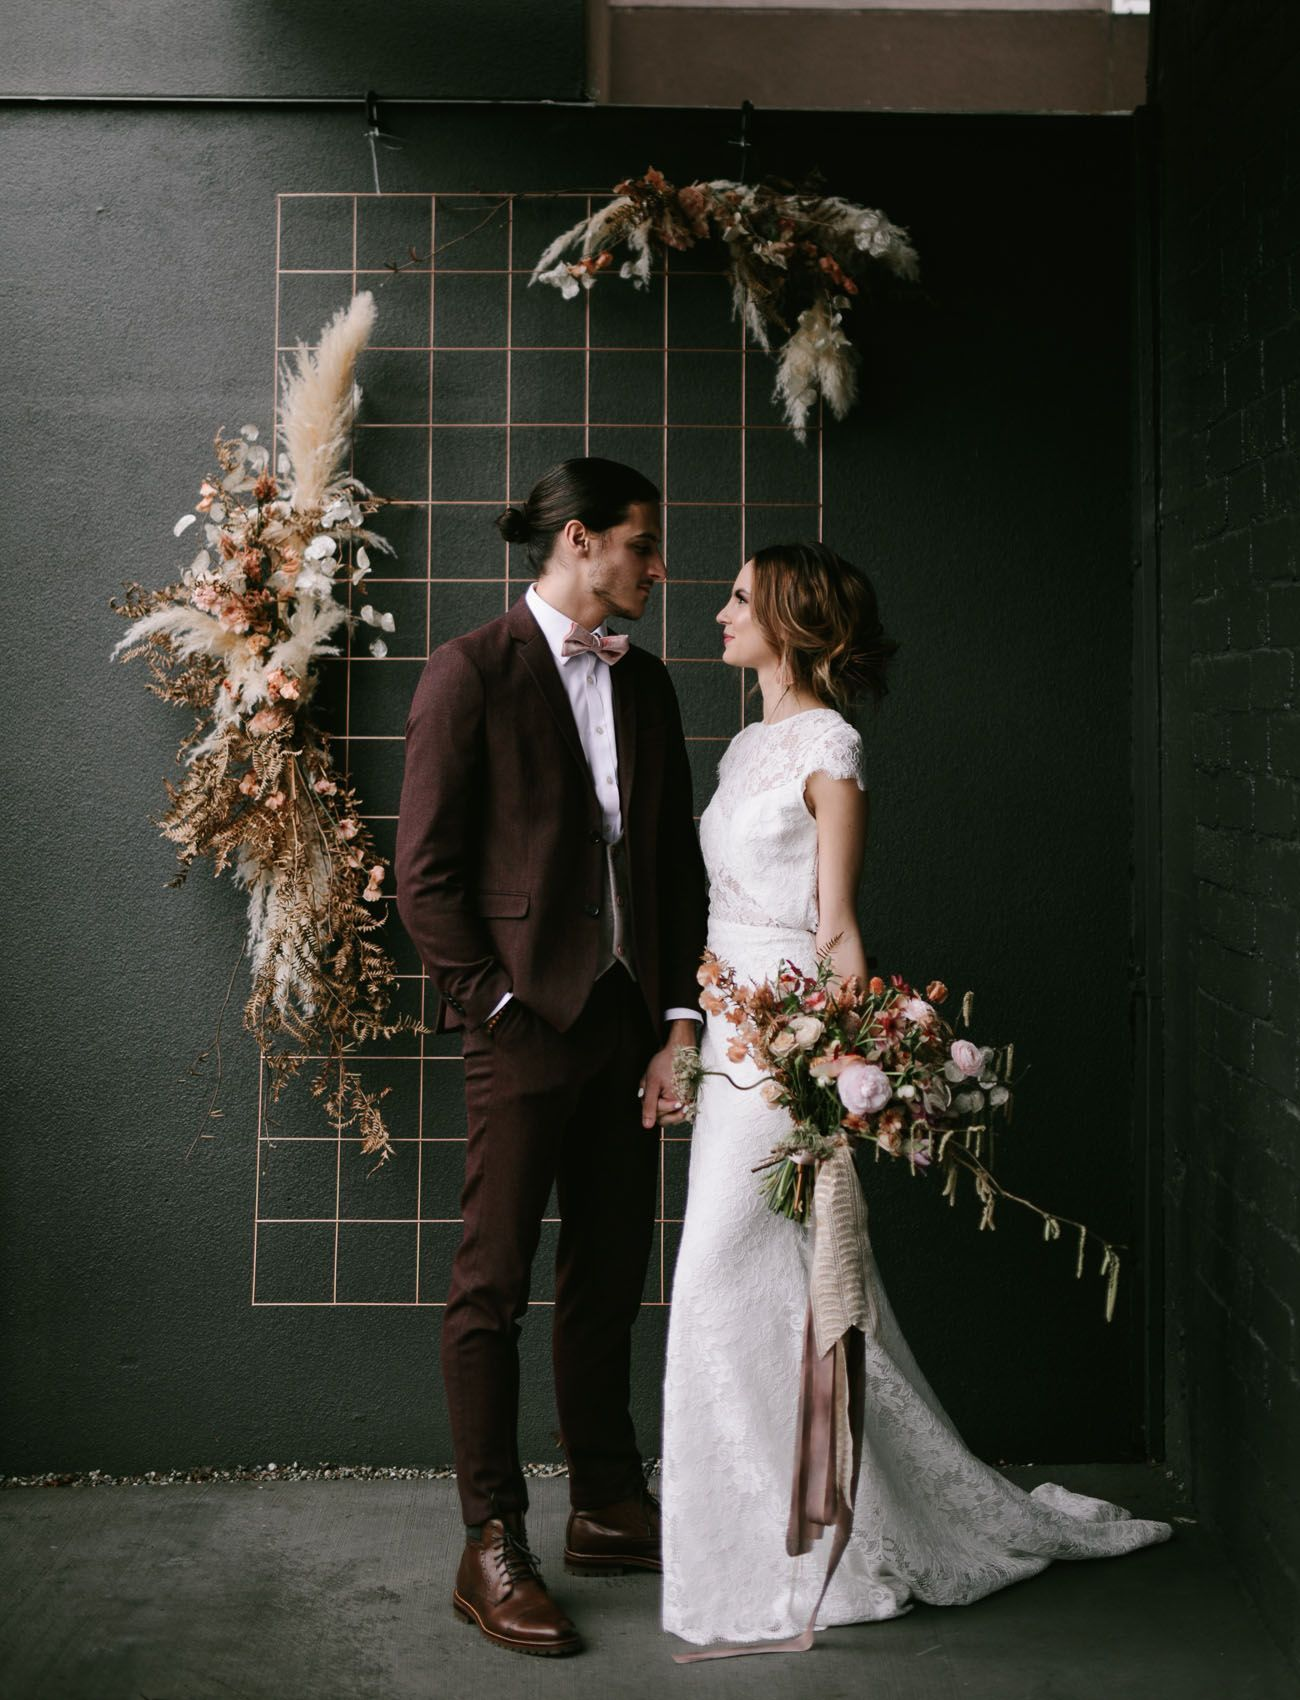 A Modern Romance Moody Elegant Wedding Inspiration With Accents Of Leather Velvet Featu Elegant Wedding Inspiration Wedding Inspiration Elegant Wedding